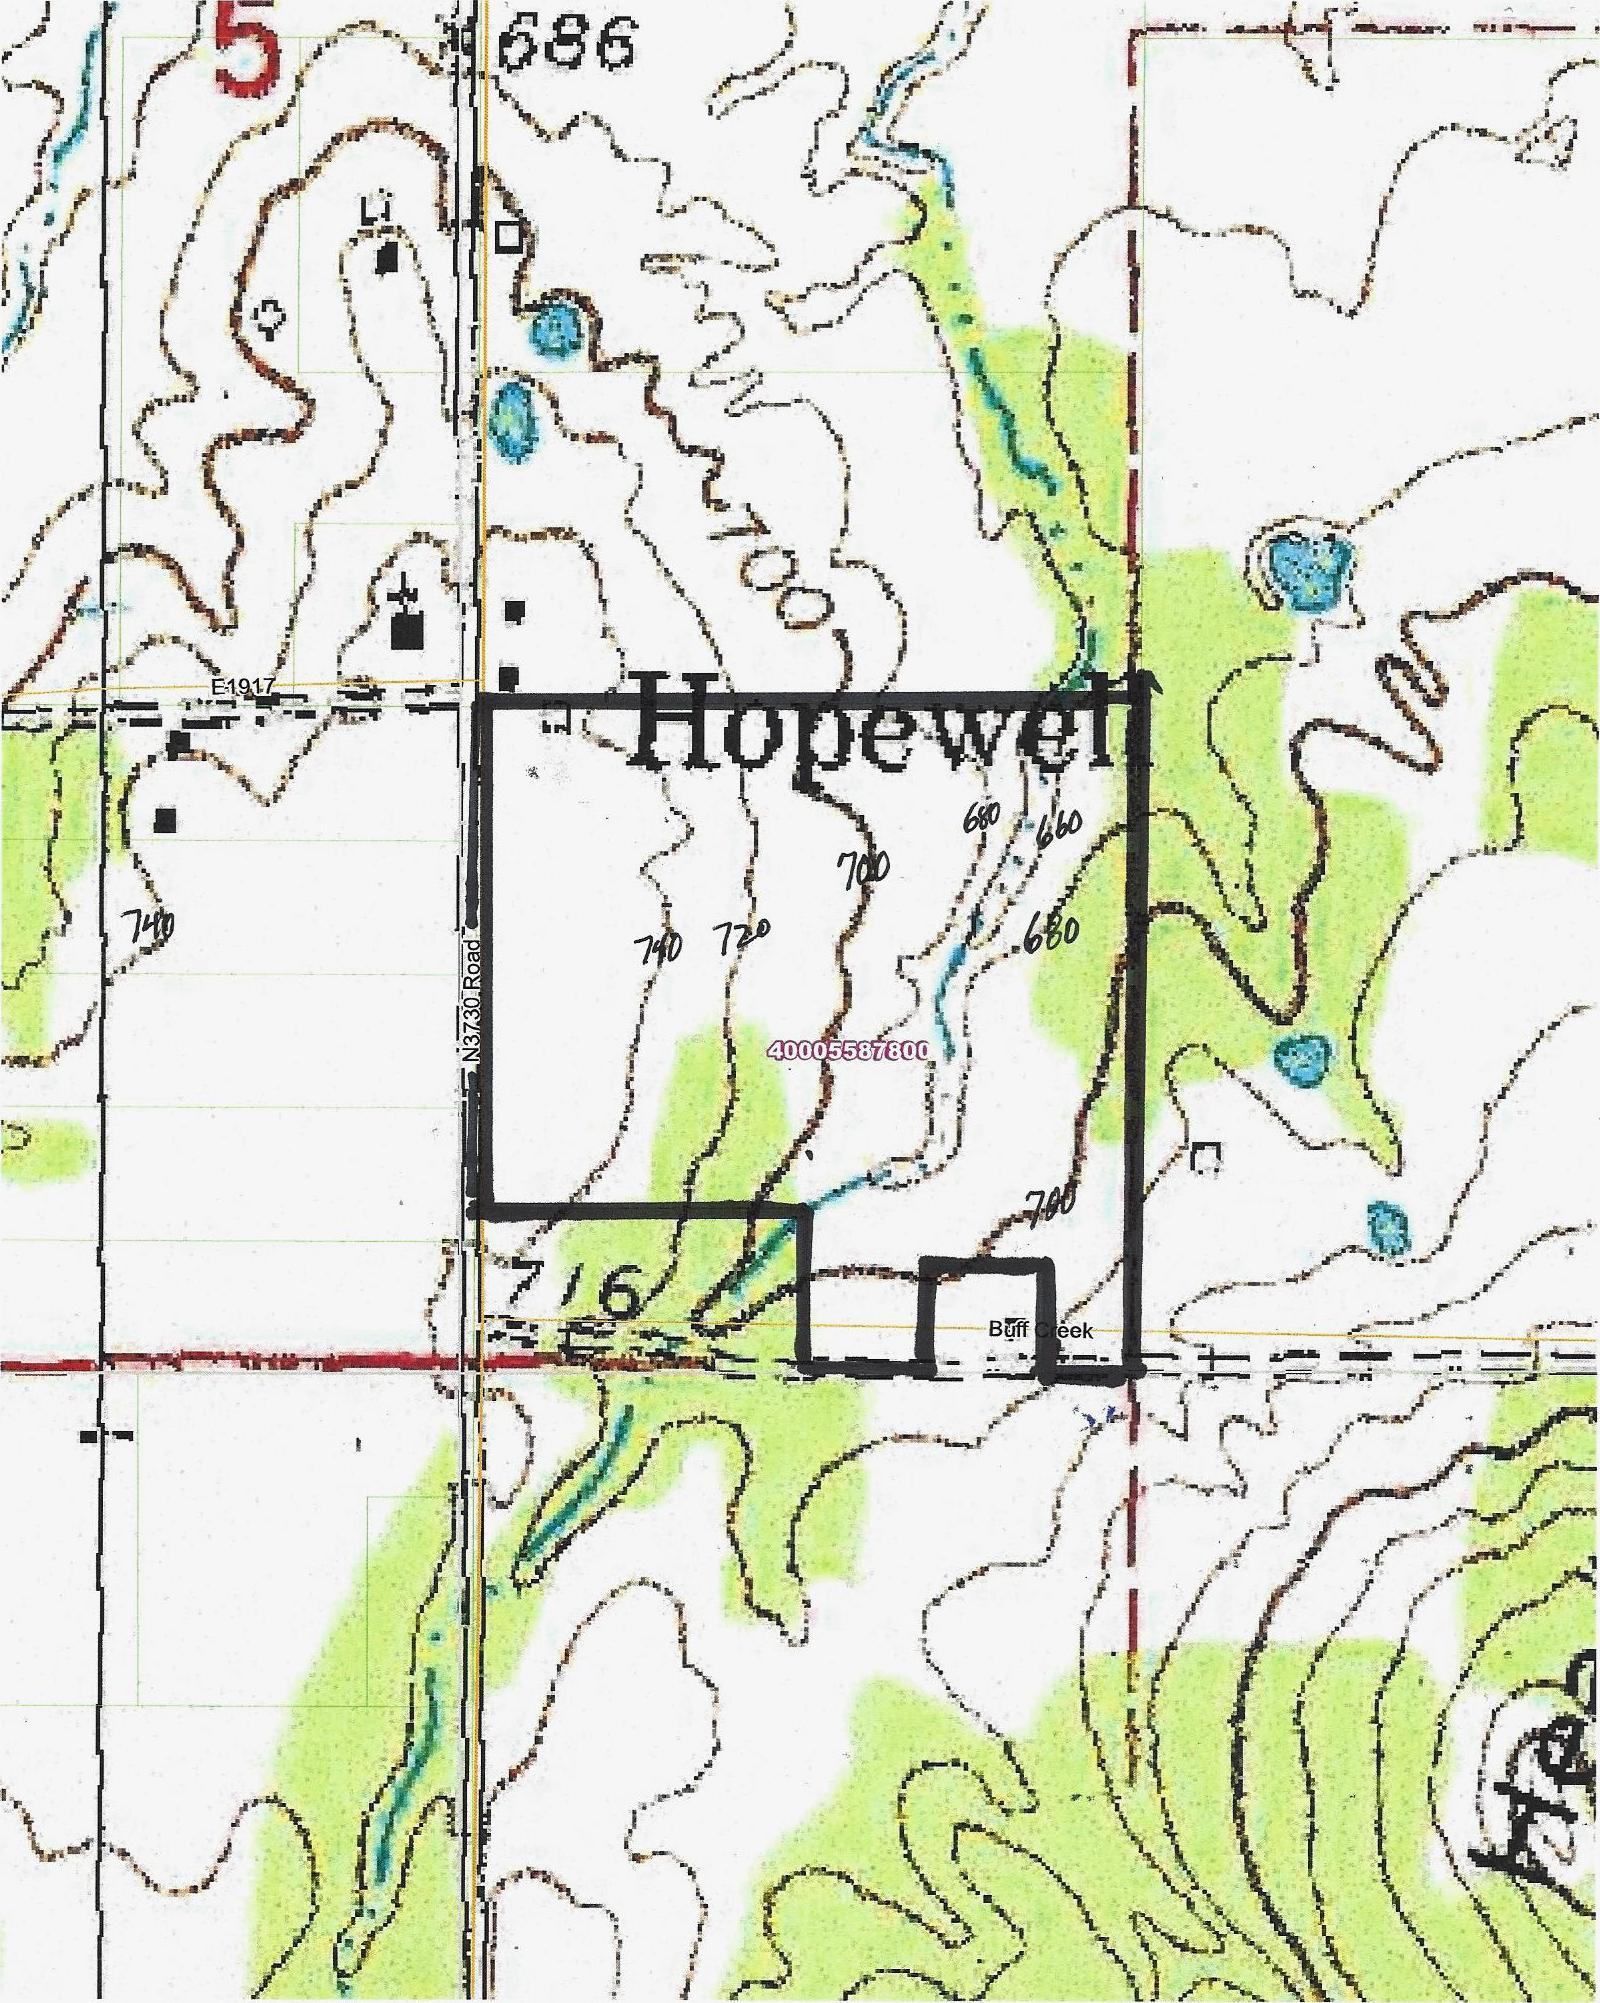 Active | Hopewell Rd Coleman, OK  4